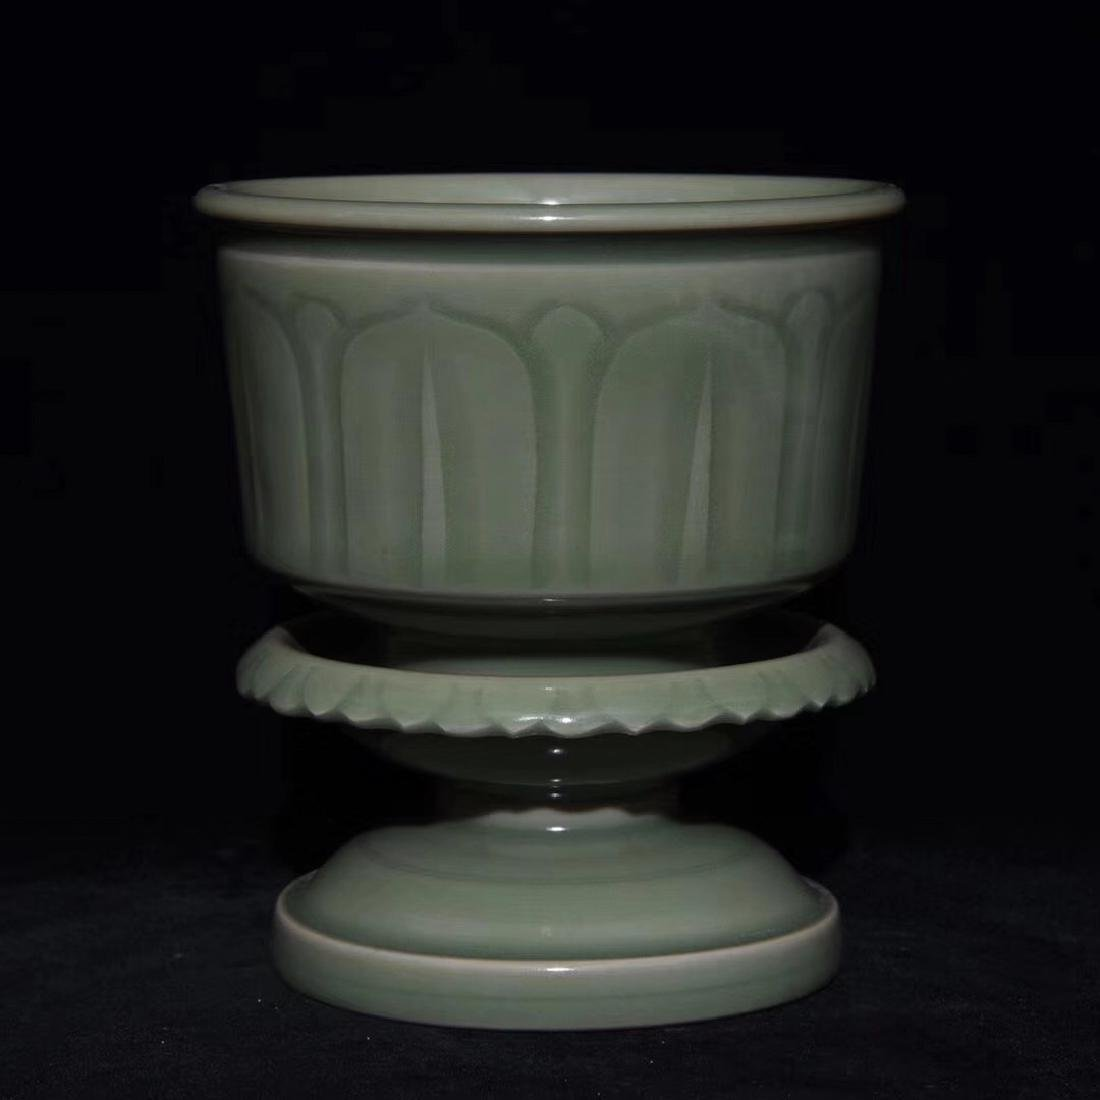 A YUEYAO INCISED FLORAL DESIGN CUP